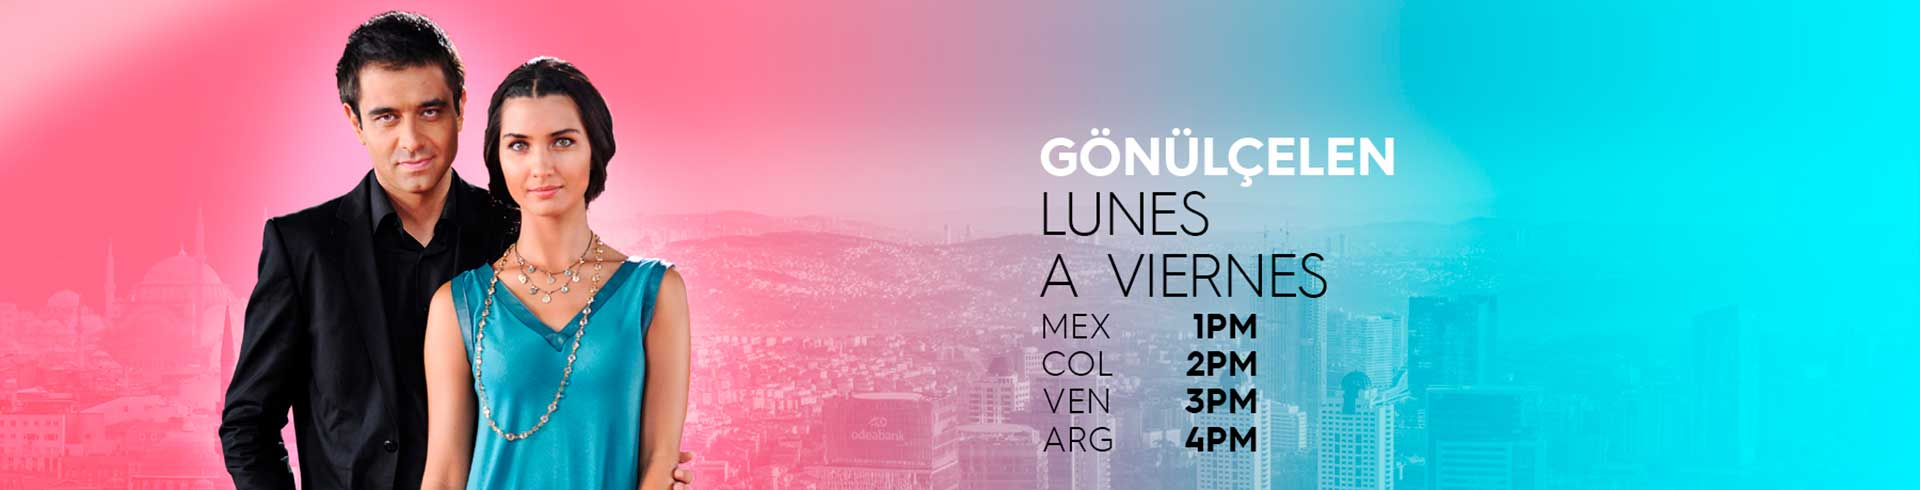 gonul-banner-cambiodehora